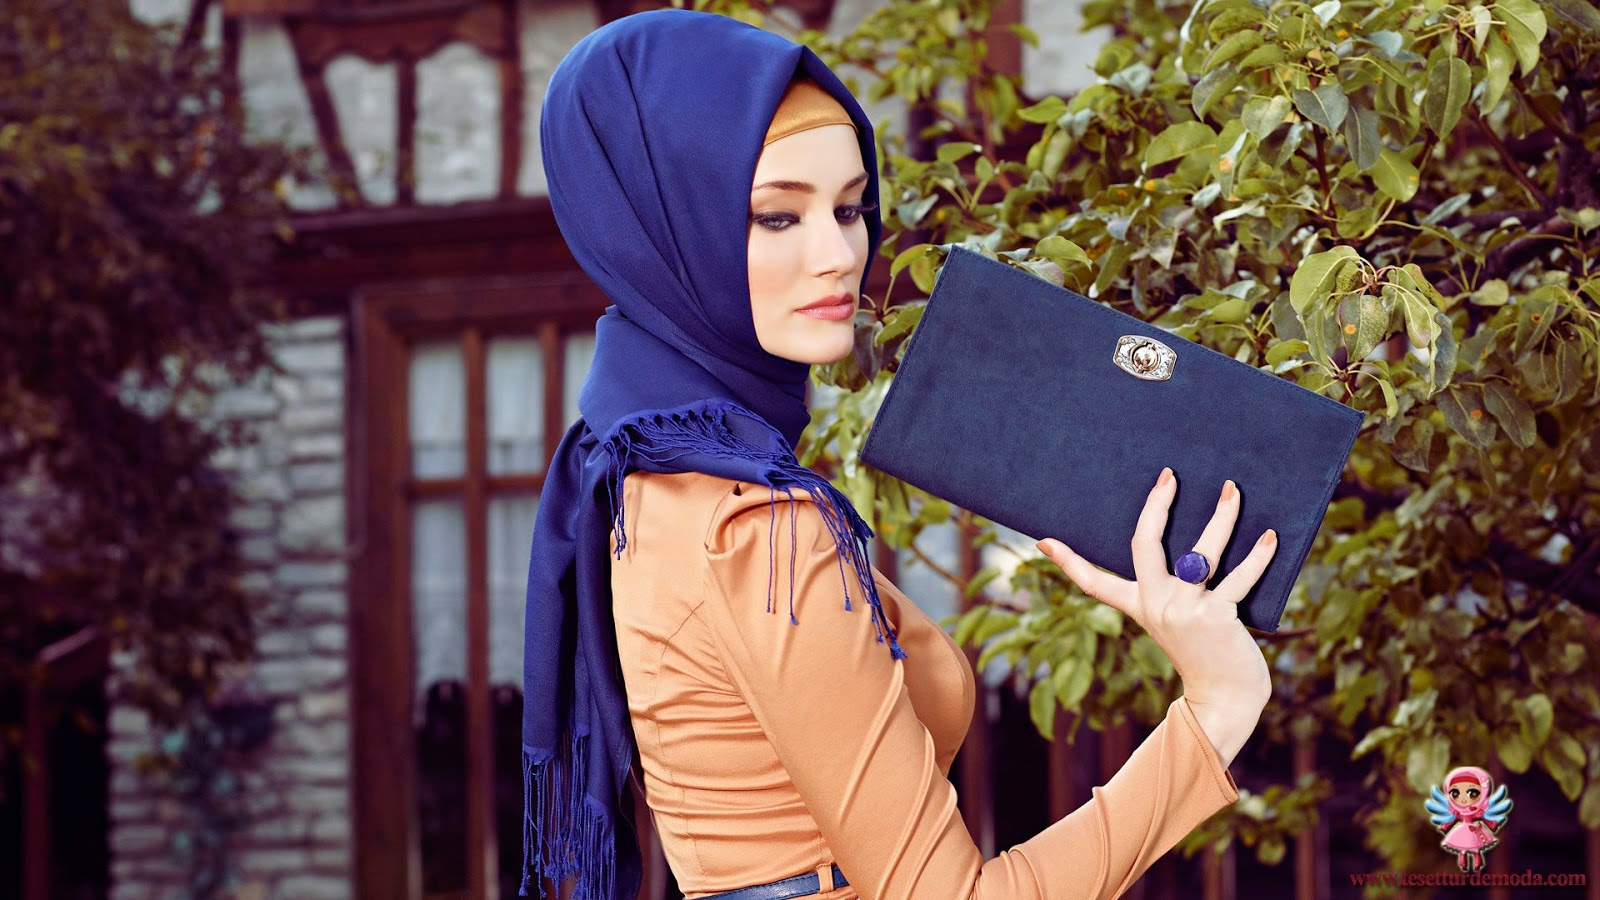 hijab turque moderne 2013 chic